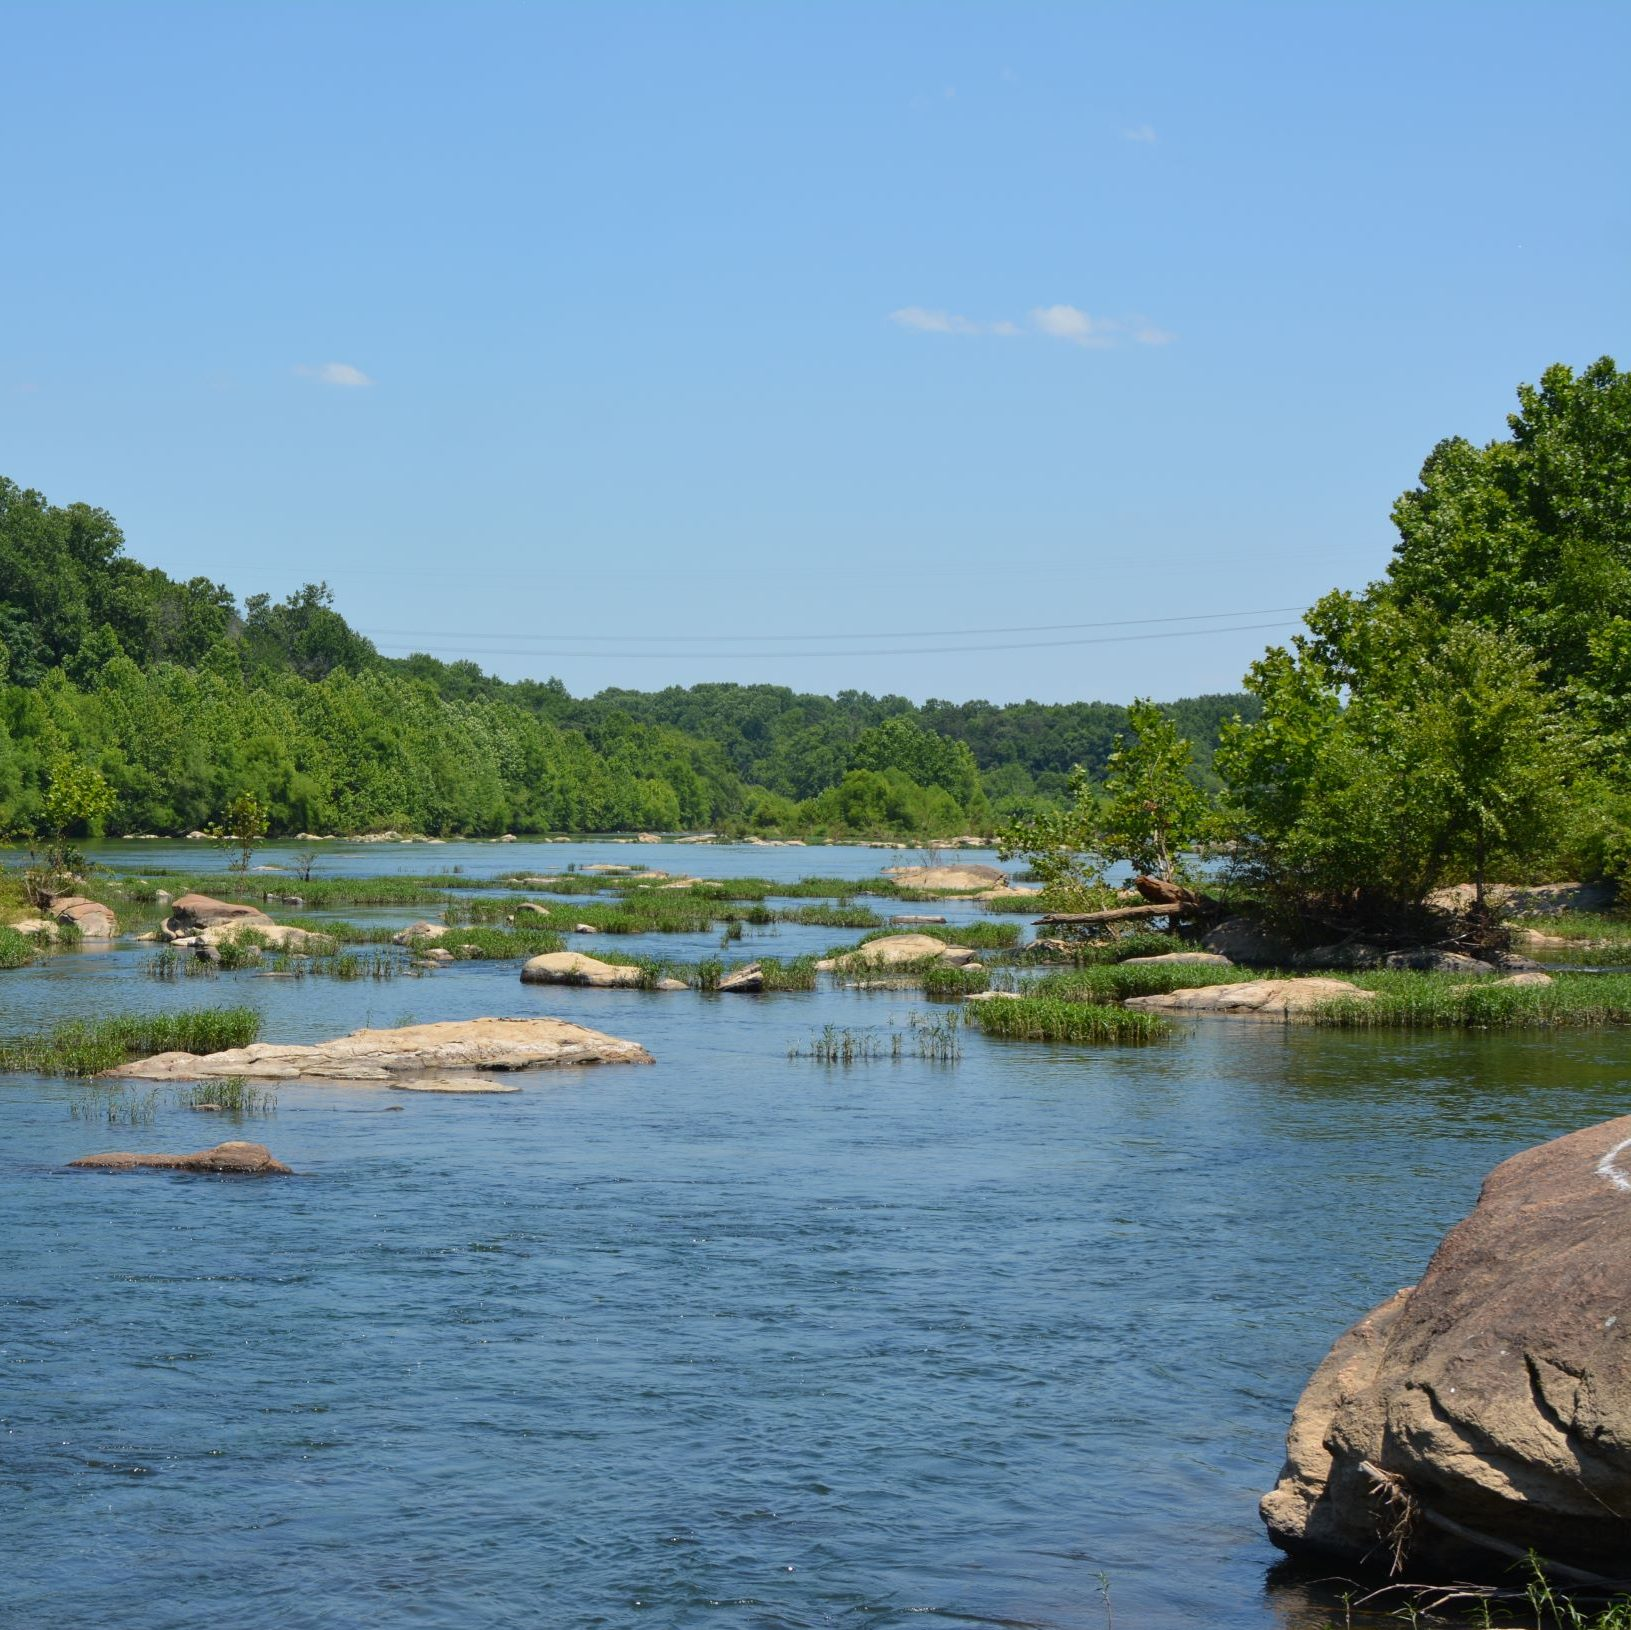 Hvac specialists in stafford shot of Rappahannock river